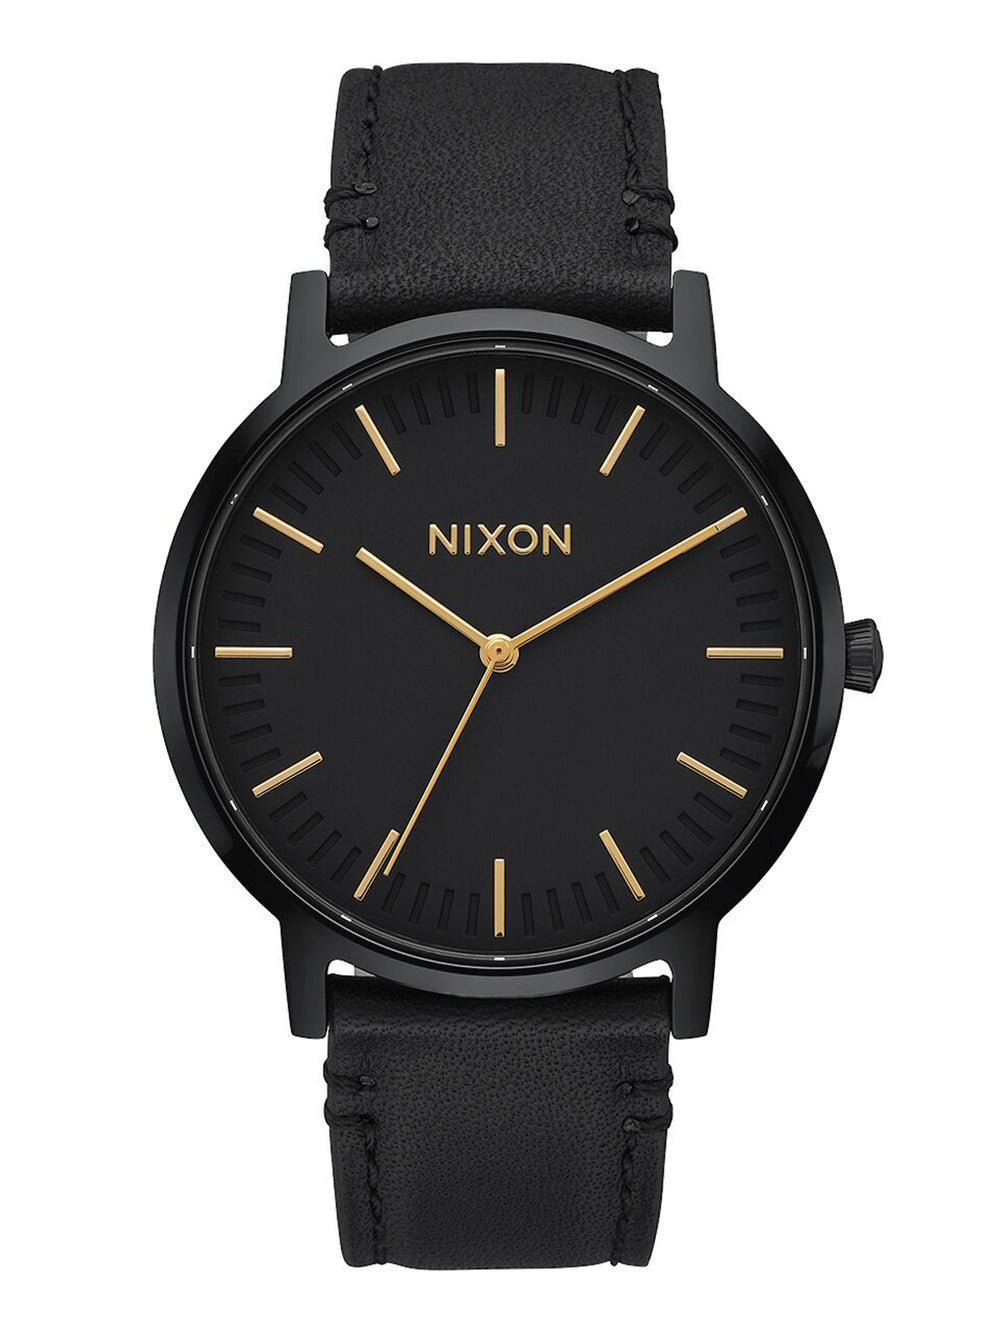 MENS PORTER LEATHER - ALL BLACK/GOLD WATCH